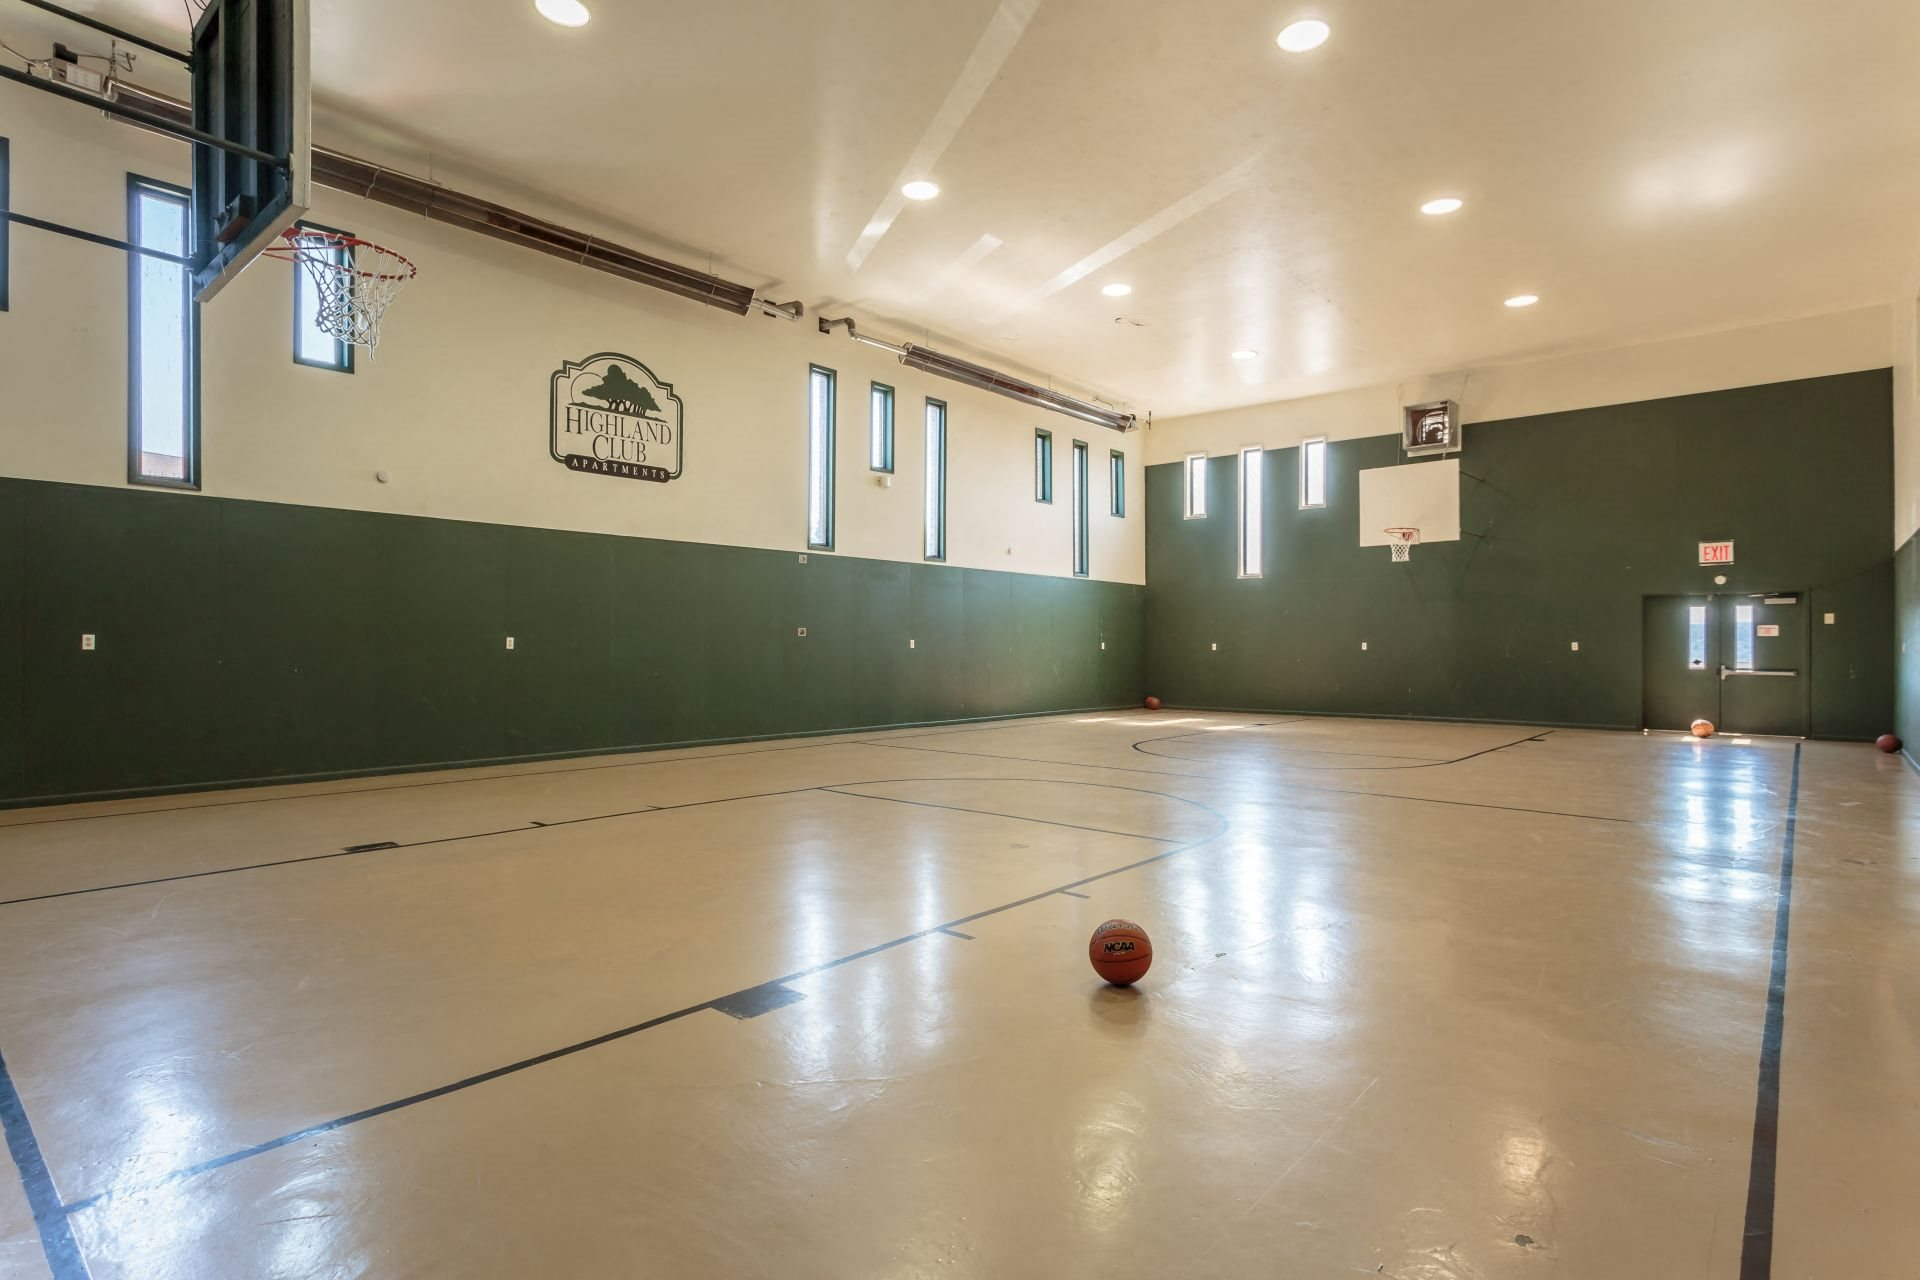 Indoor Basketball Court at Highland Club Apartments, Watervliet, NY